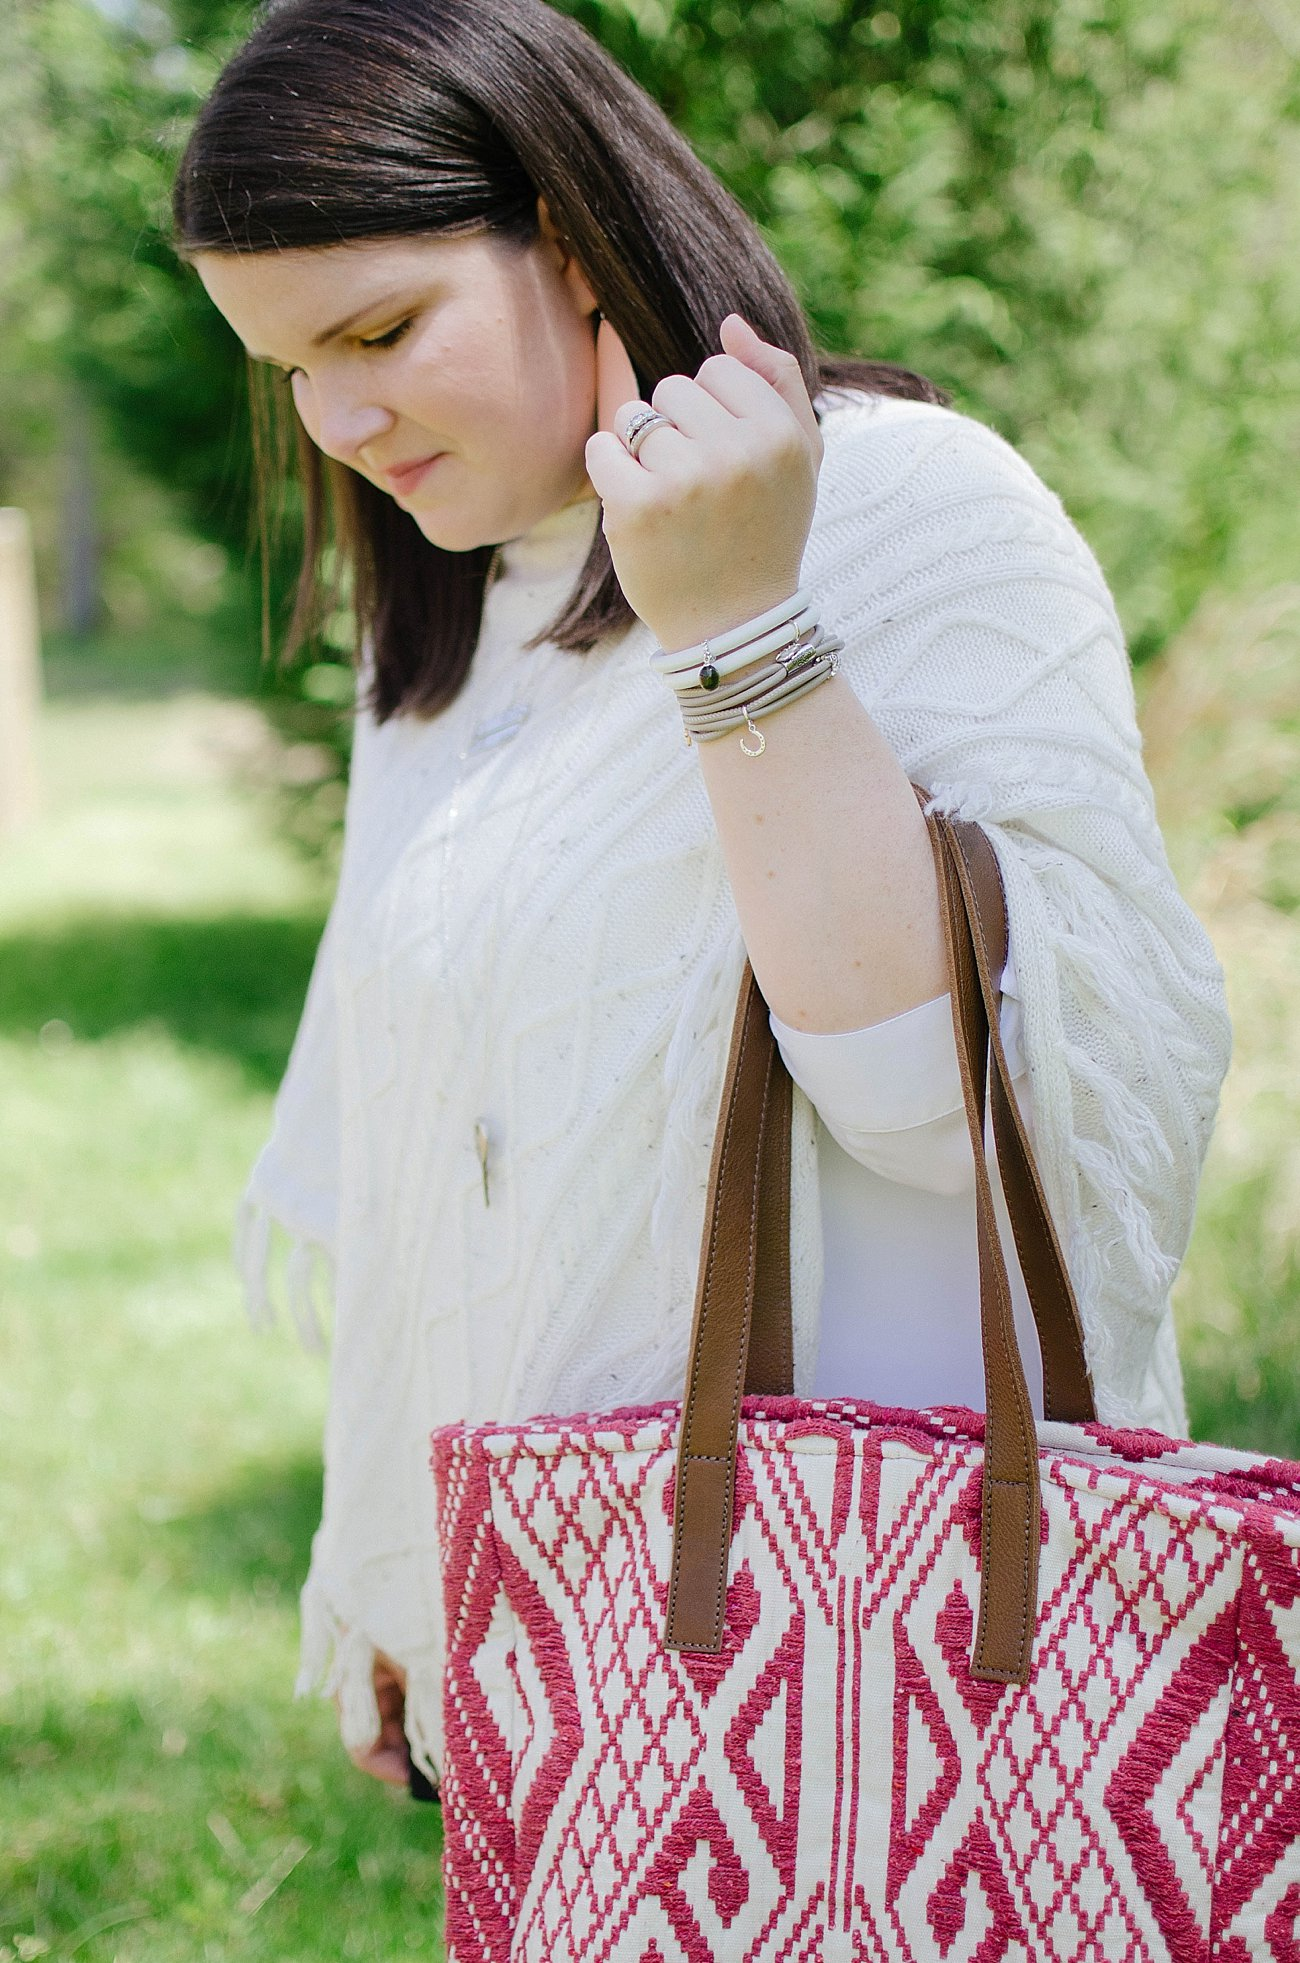 Grace & Lace poncho, Grace & Lace bag, Nickel and Suede earrings, The Root Collective Millie flats, Endless Jewelry bracelets, Wristology Watch | Casual Style - North Carolina Fashion Blogger (6)